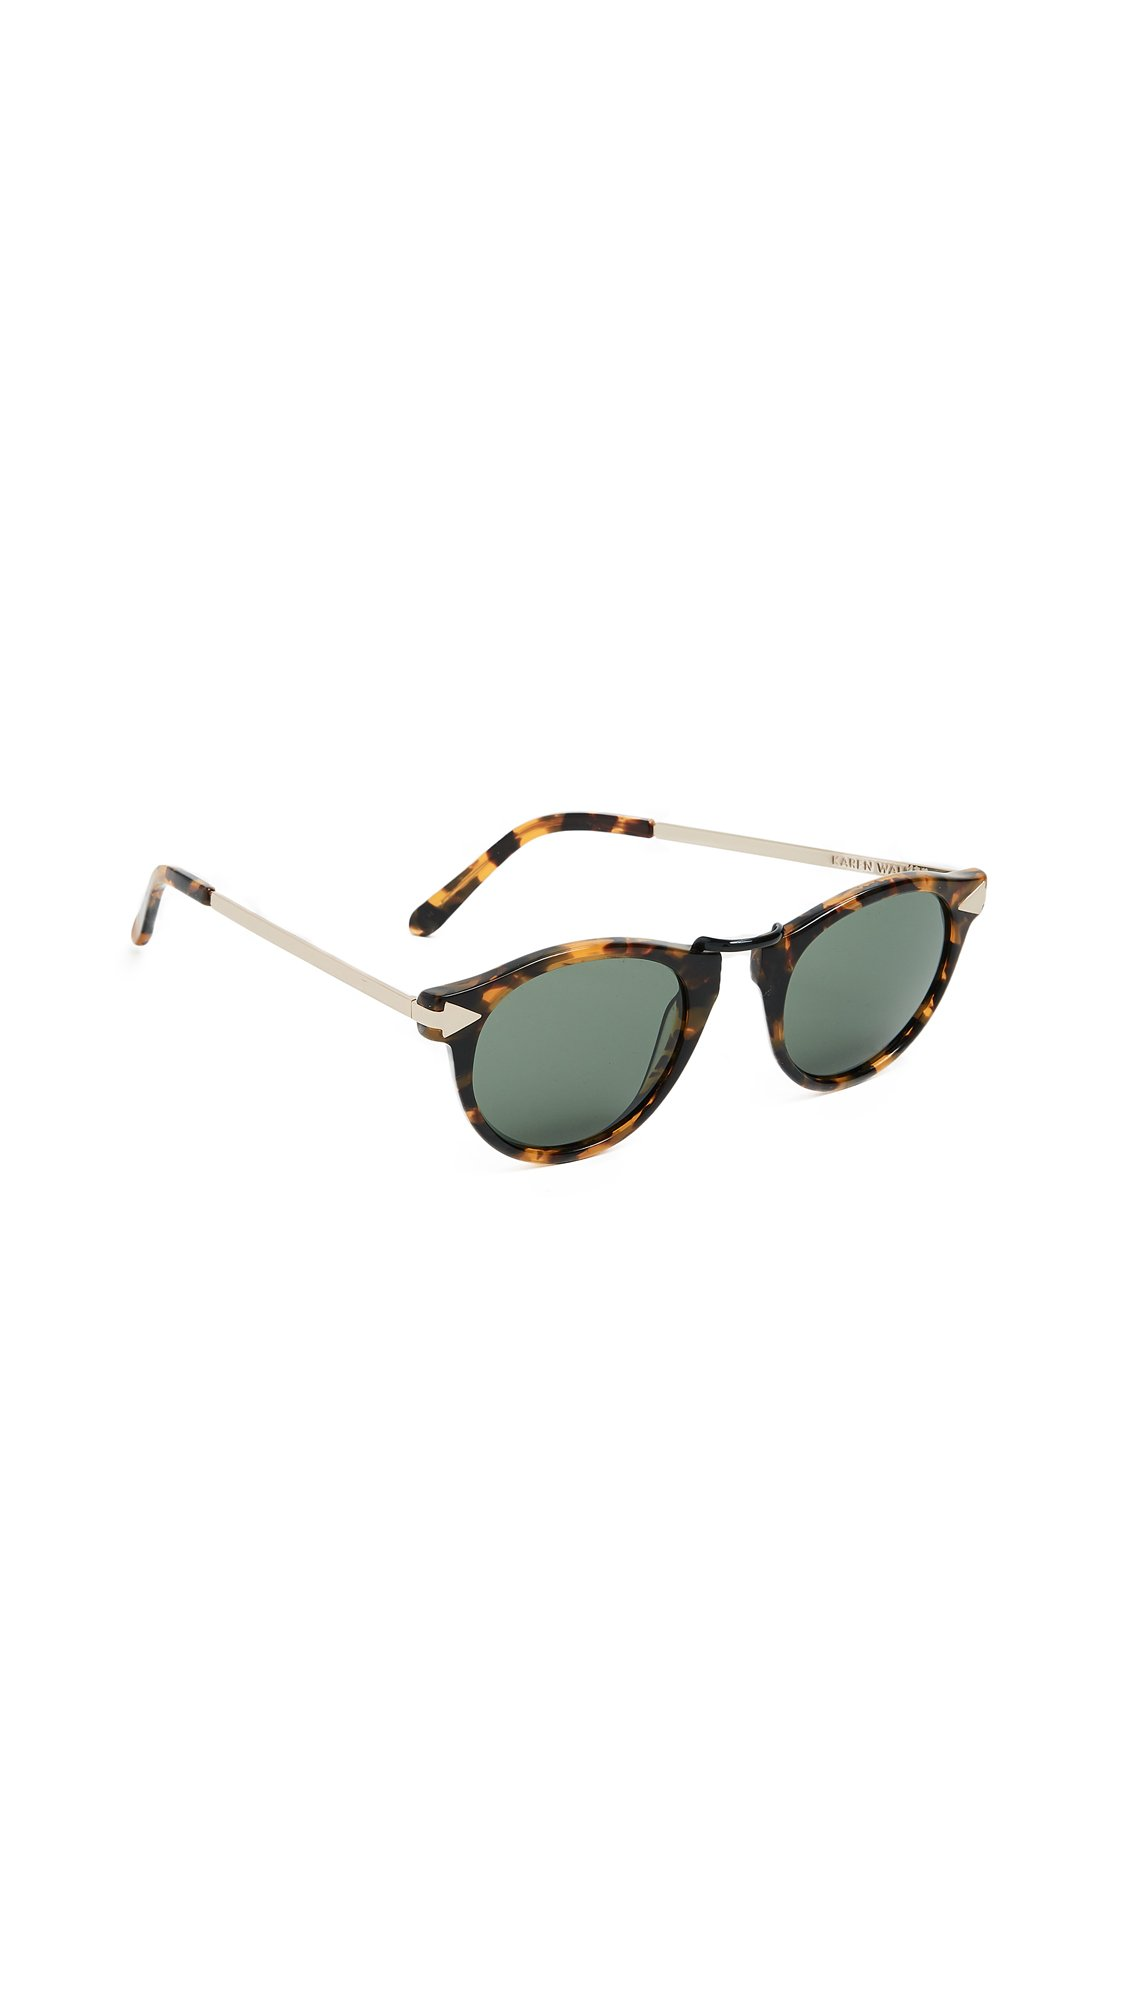 Karen Walker Women's Helter Skelter Sunglasses